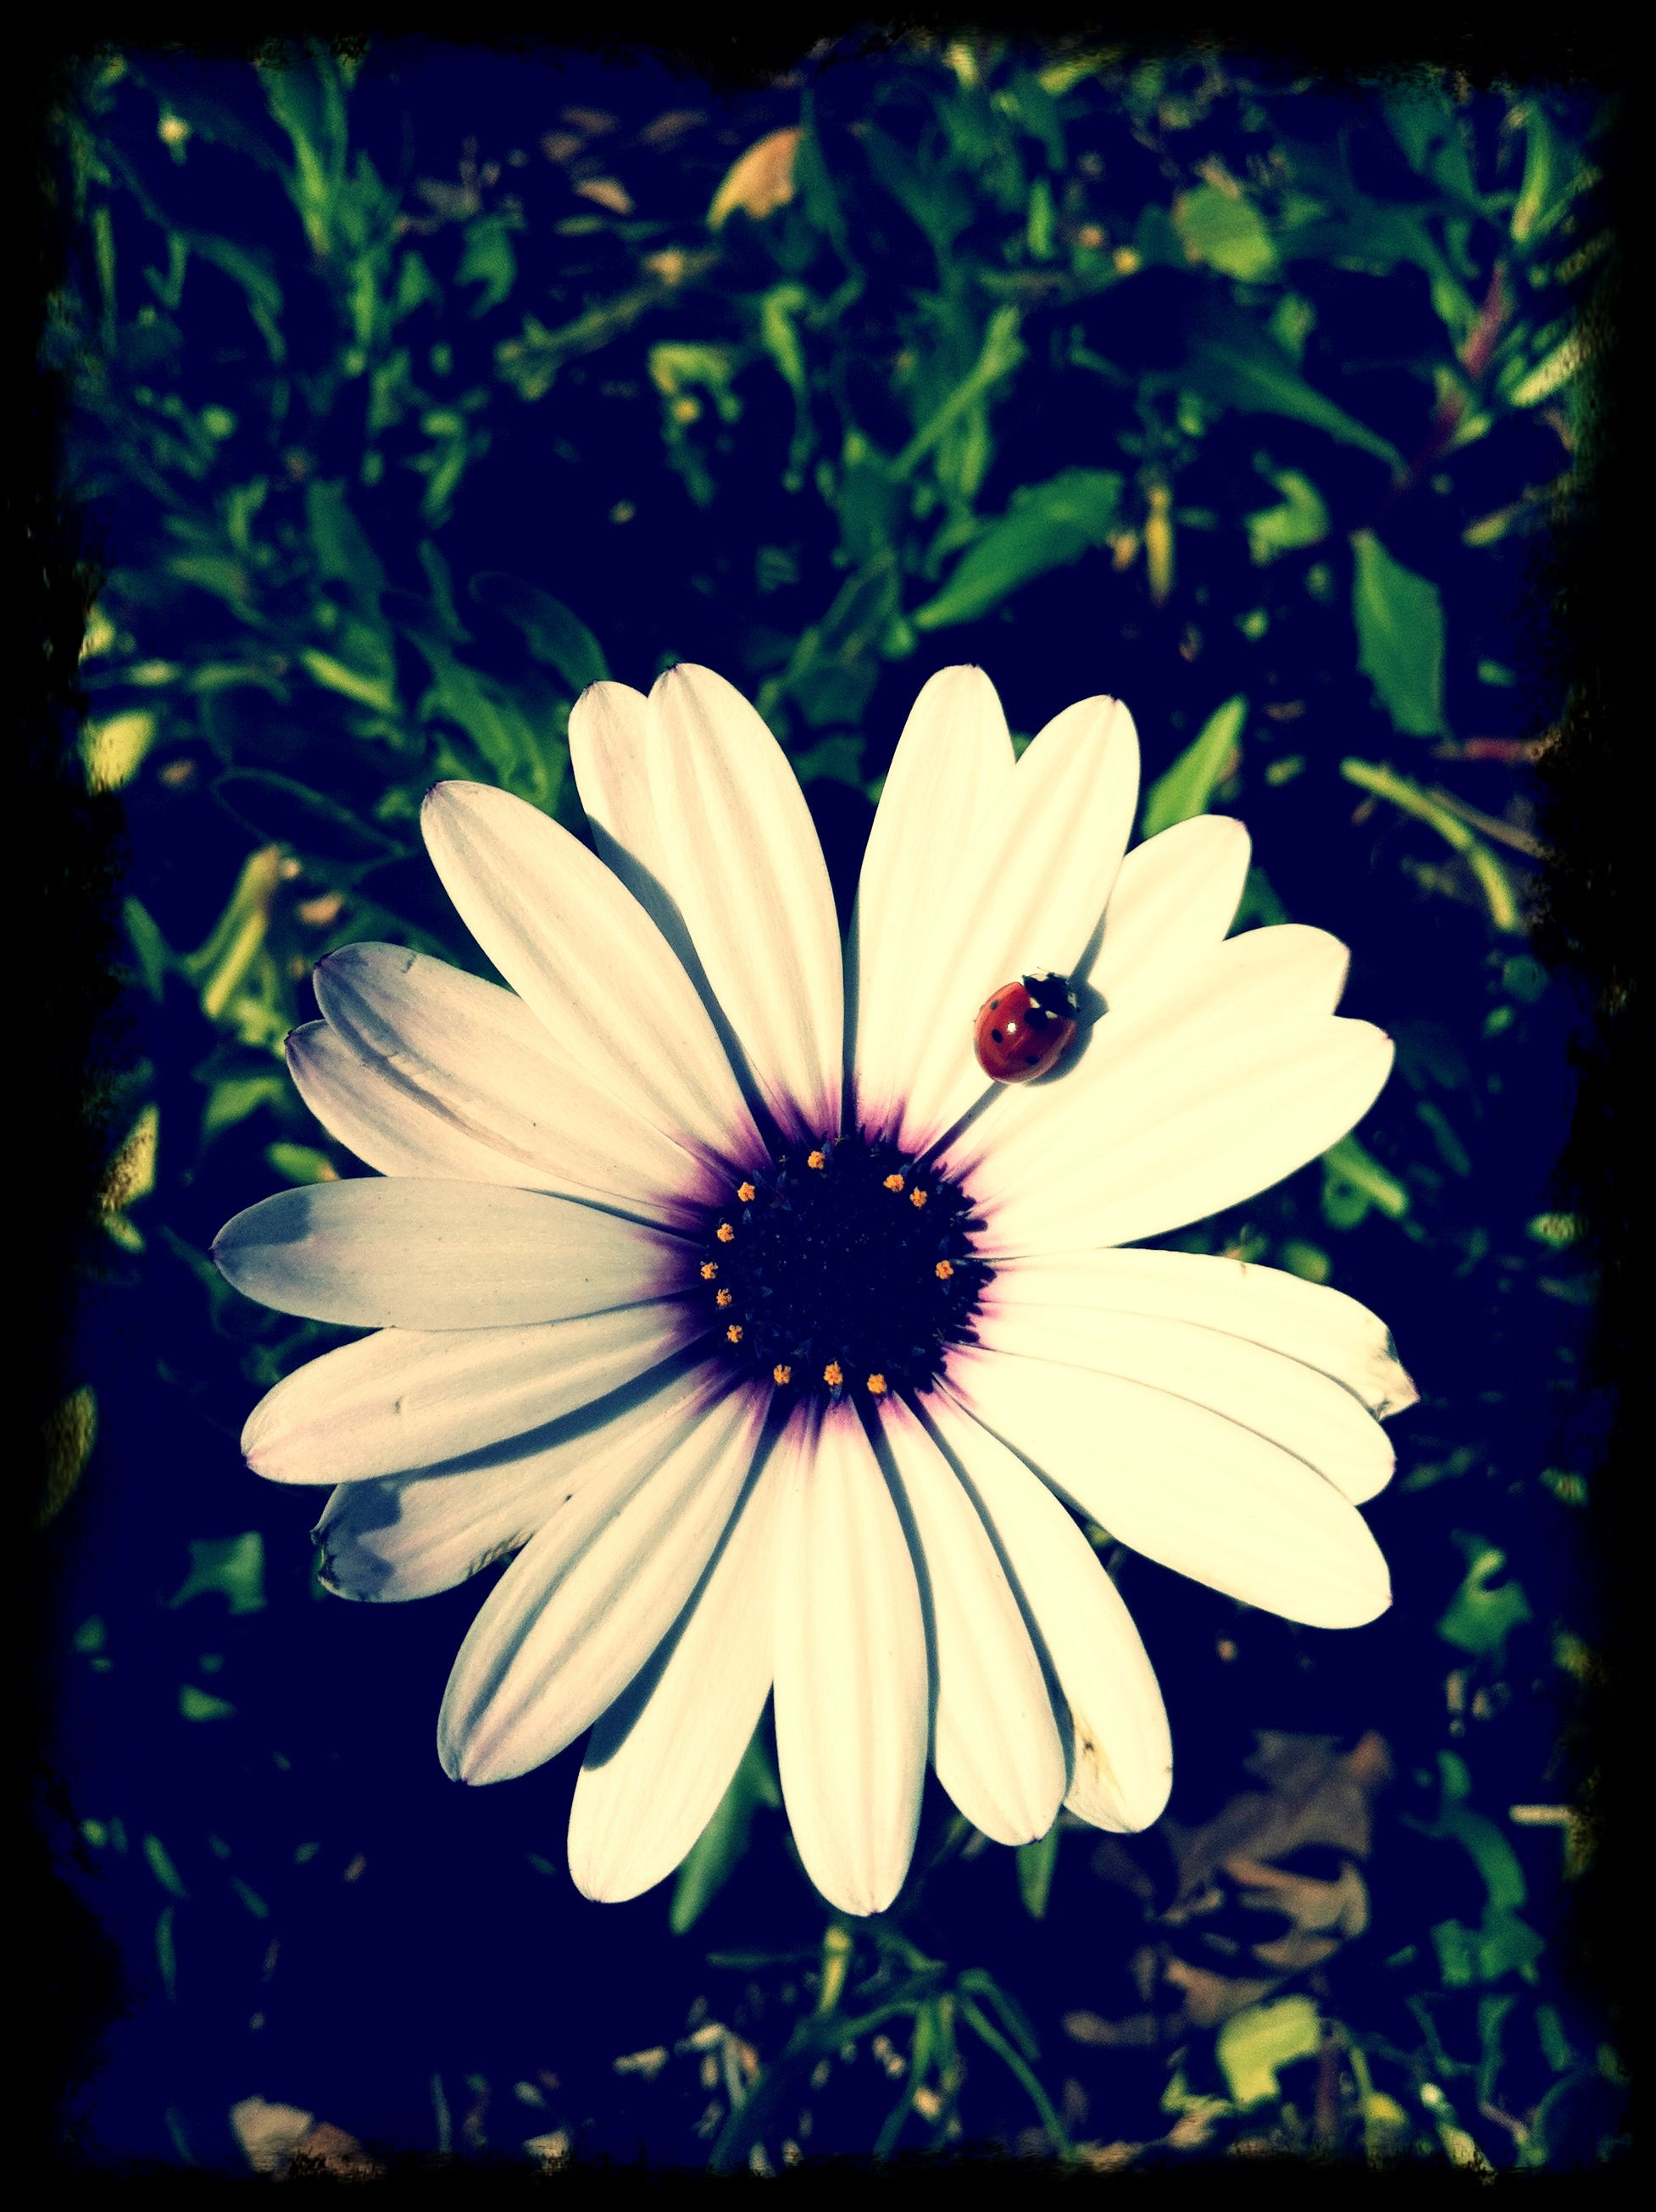 I was walking and saw a lady bug sunbathing on a flower so I took a picture of it.